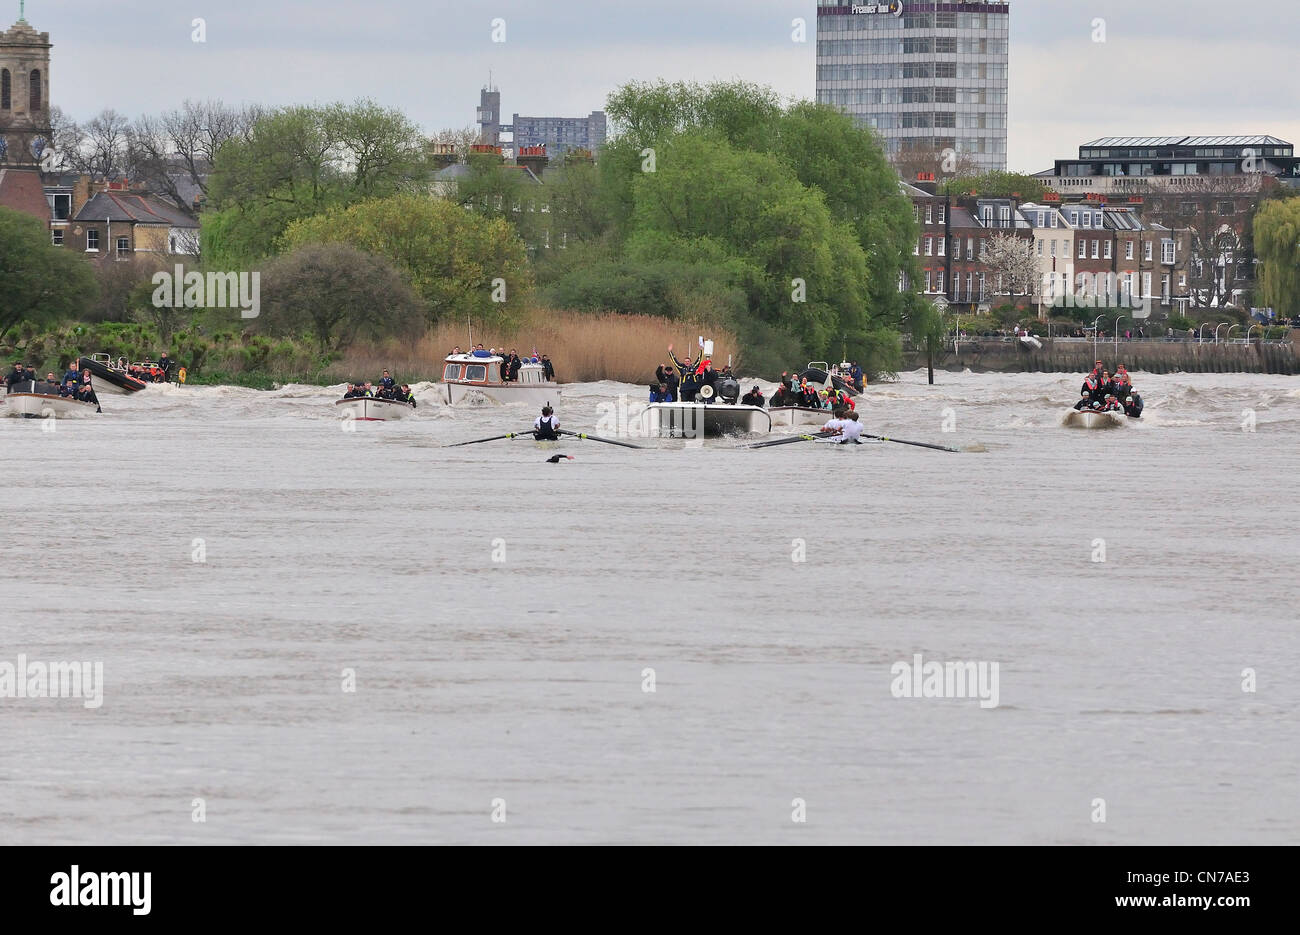 Protester swims into Oxford and Cambridge 'blades' causing the race to stop and be restarted 2½ miles into - Stock Image